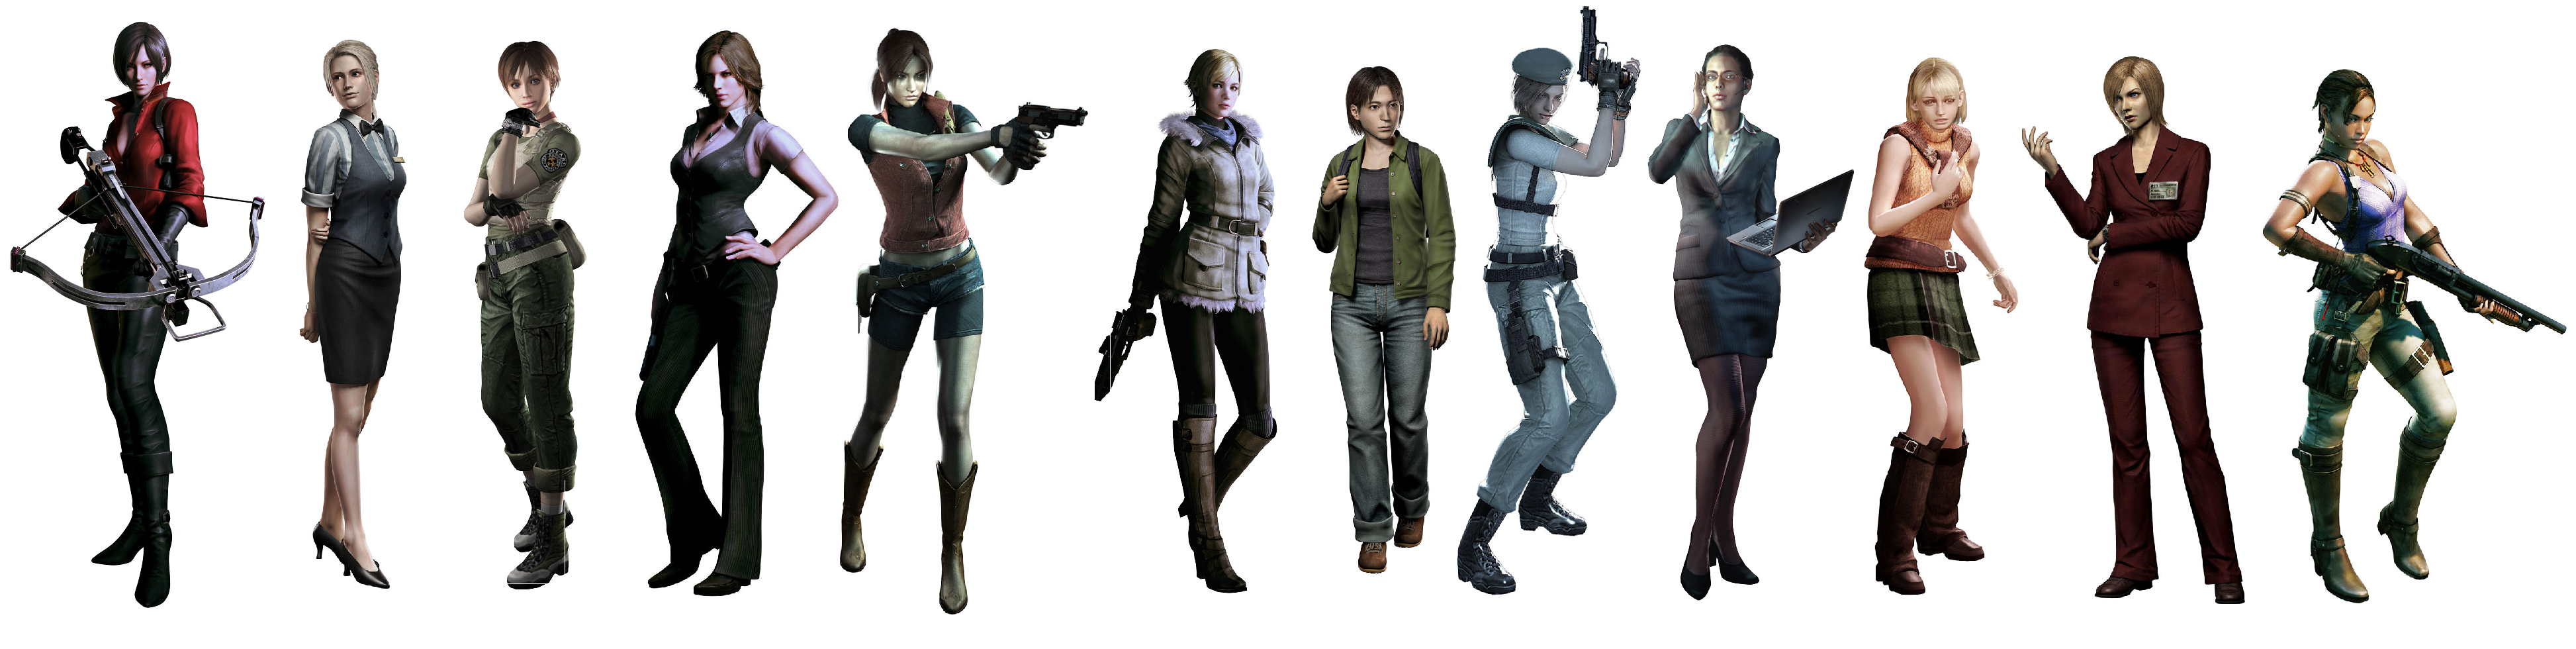 Resident evil female characters porn naked pic